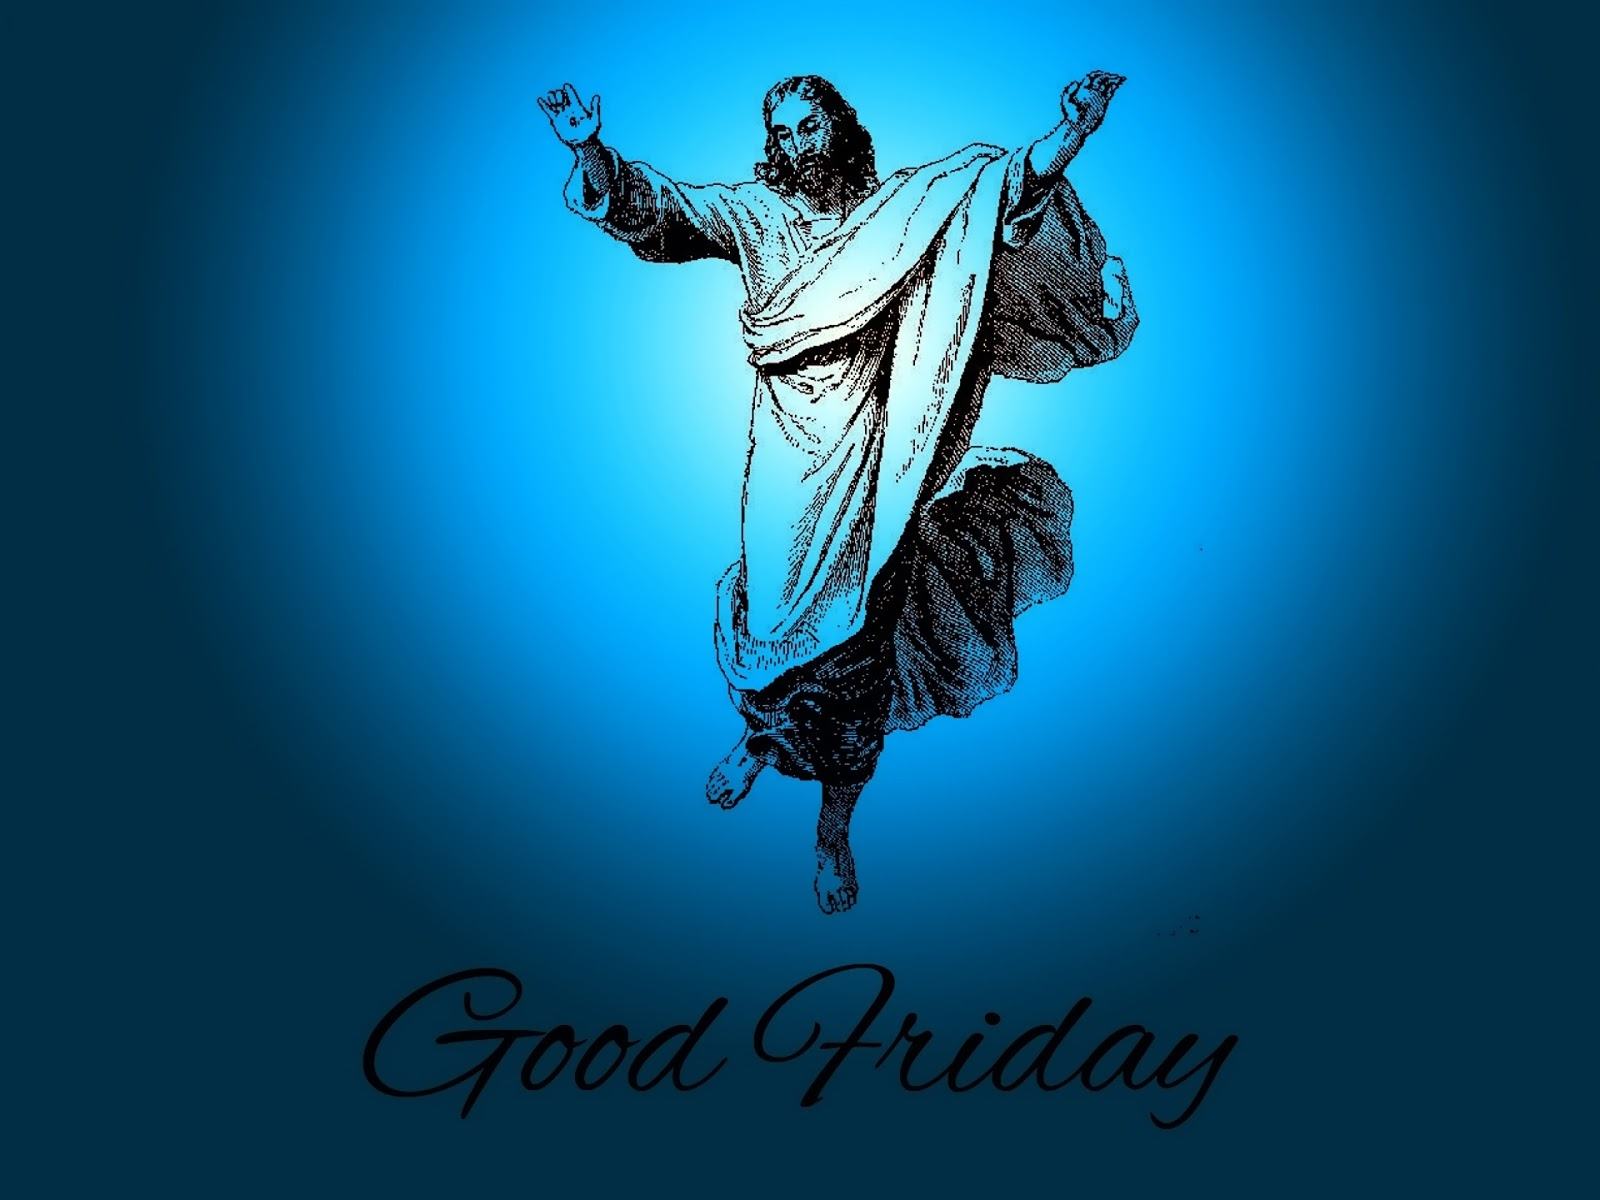 11 Top Wallpapers Of Good Friday 2017 Best Images For